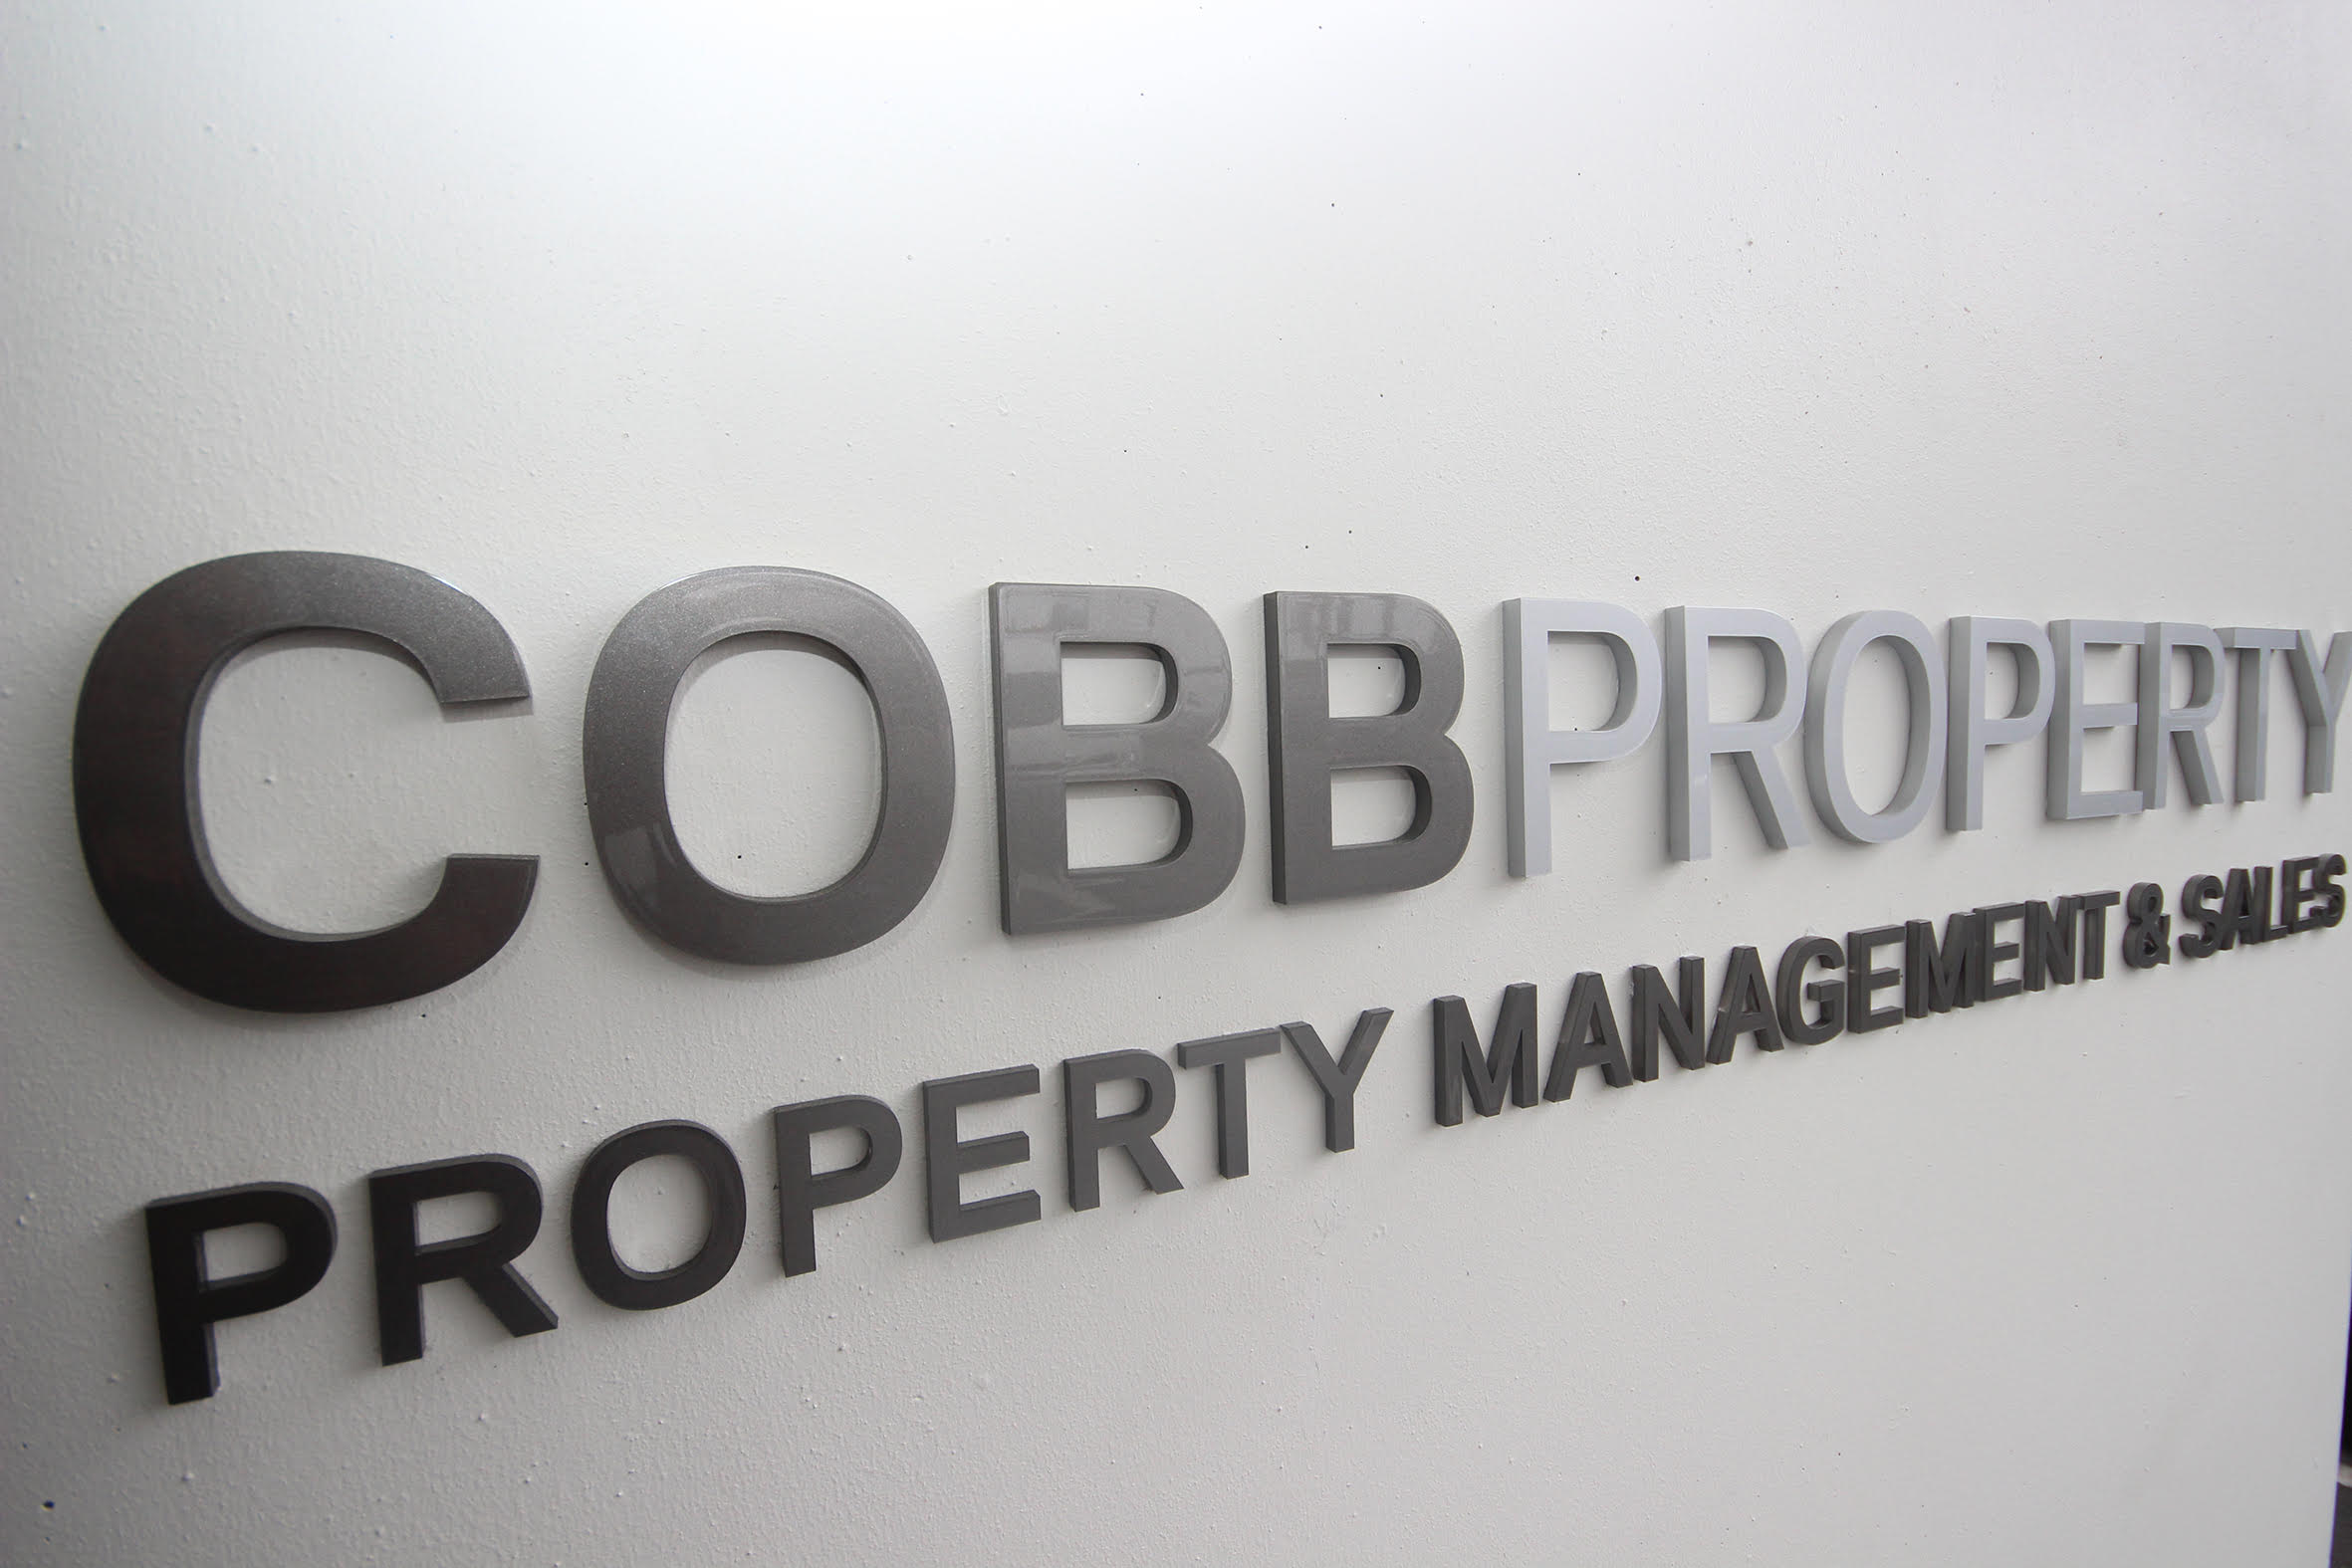 Cobb Property Management and Sales